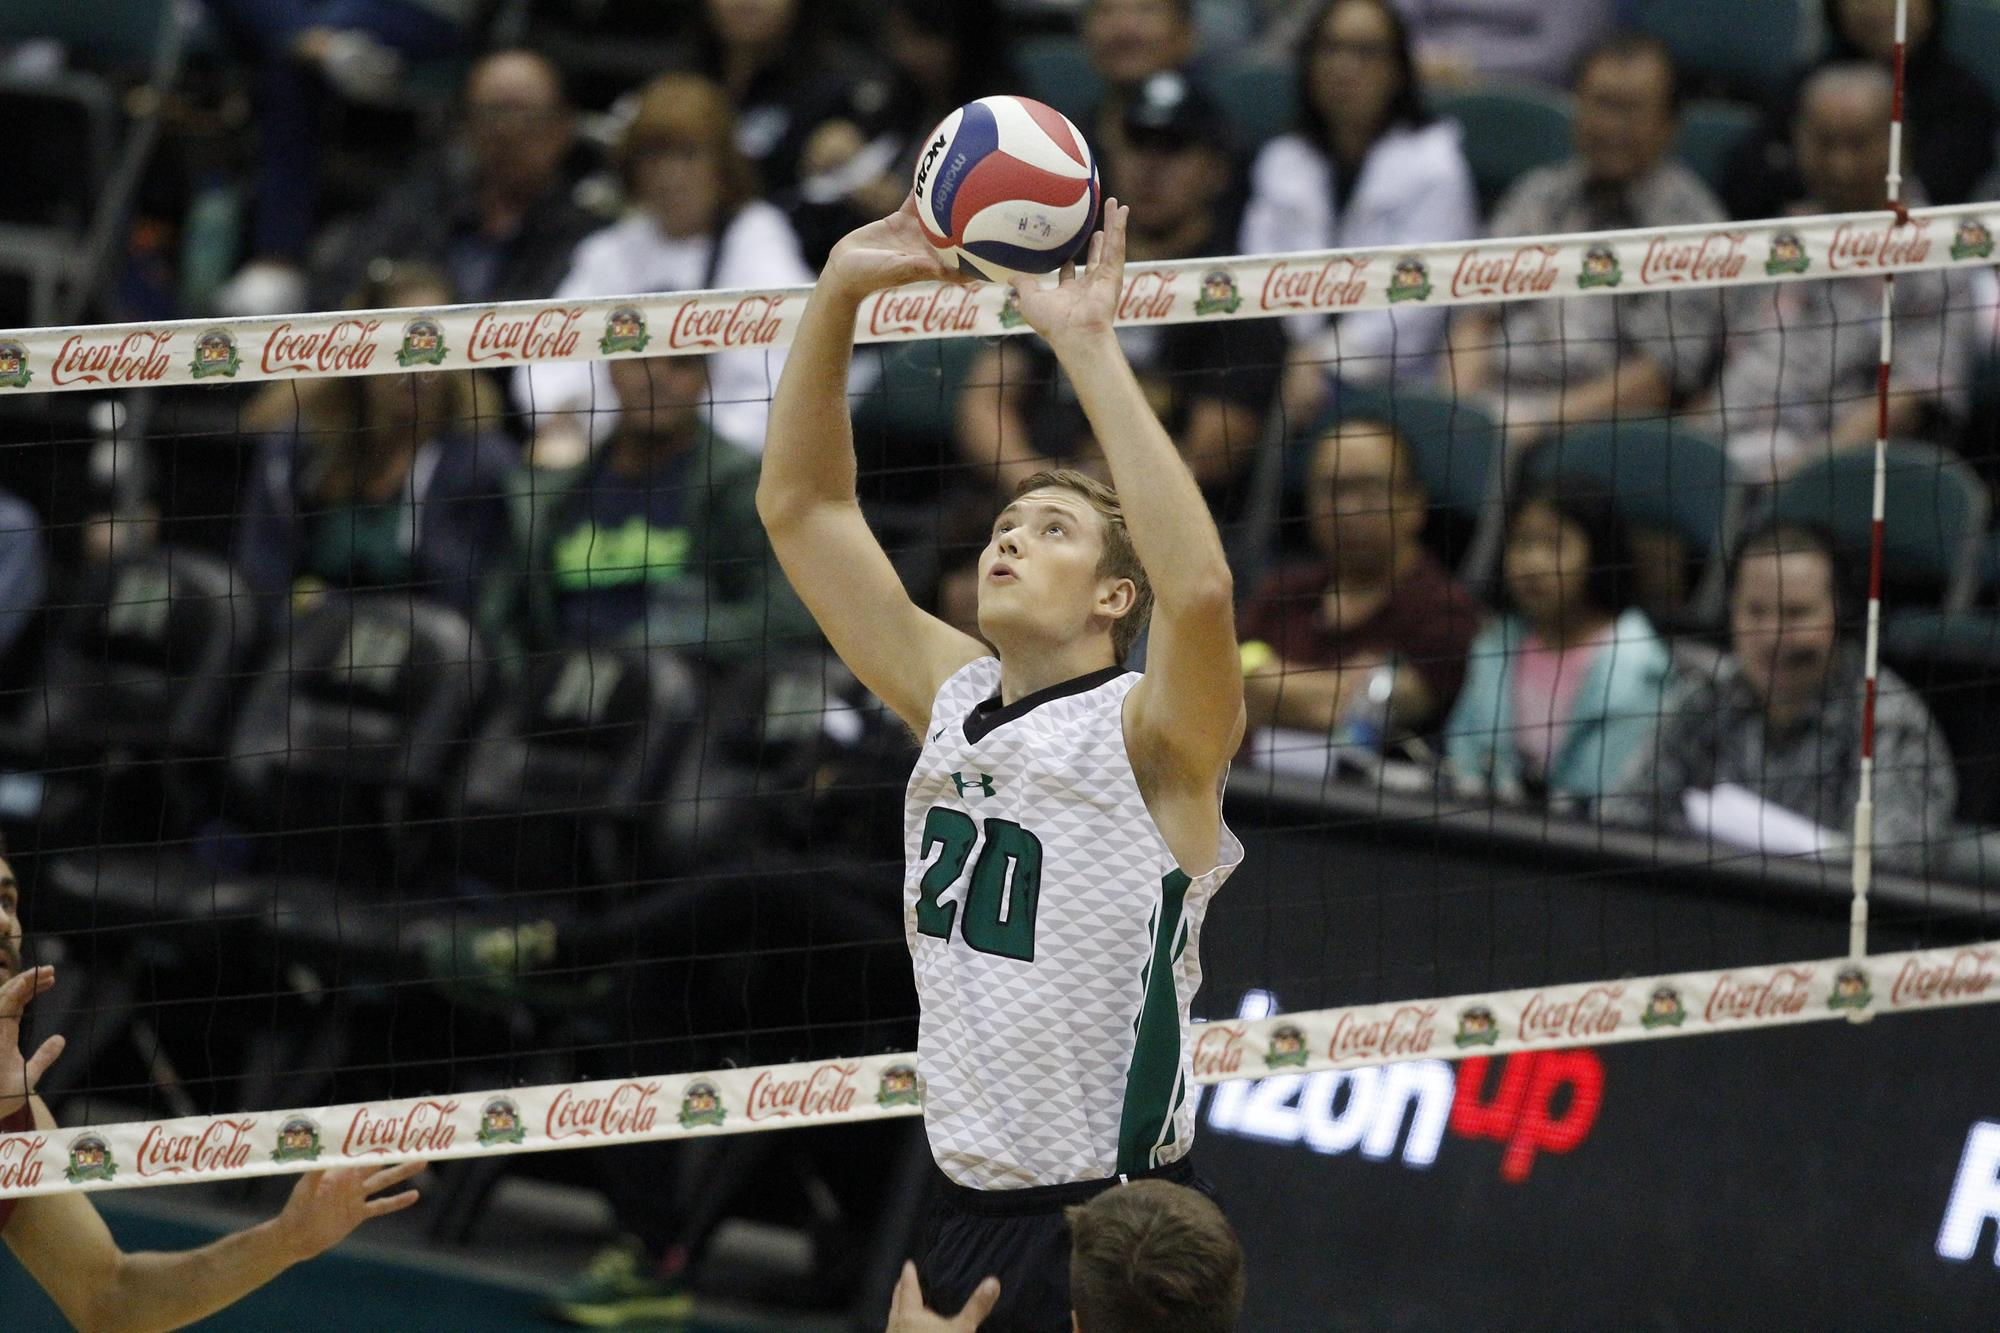 Jackson Van Eekeren Men S Volleyball University Of Hawai I At Manoa Athletics